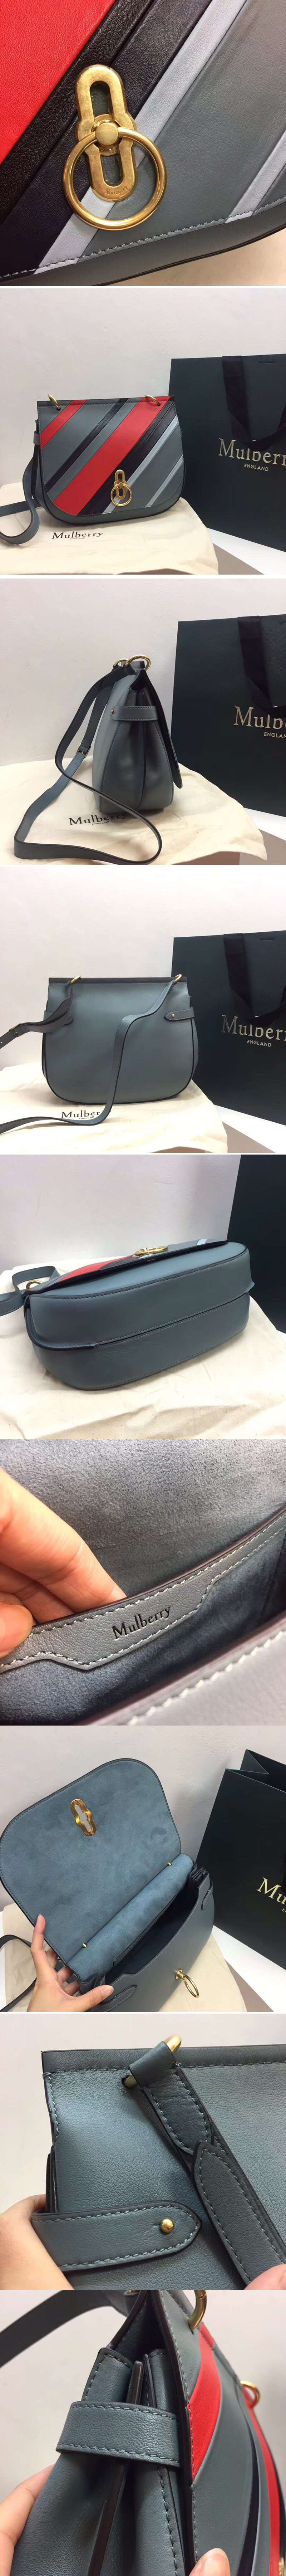 Replica Mulberry Amberley Satchel Medium Bags Original Leather Grey/Red/Black/Blue